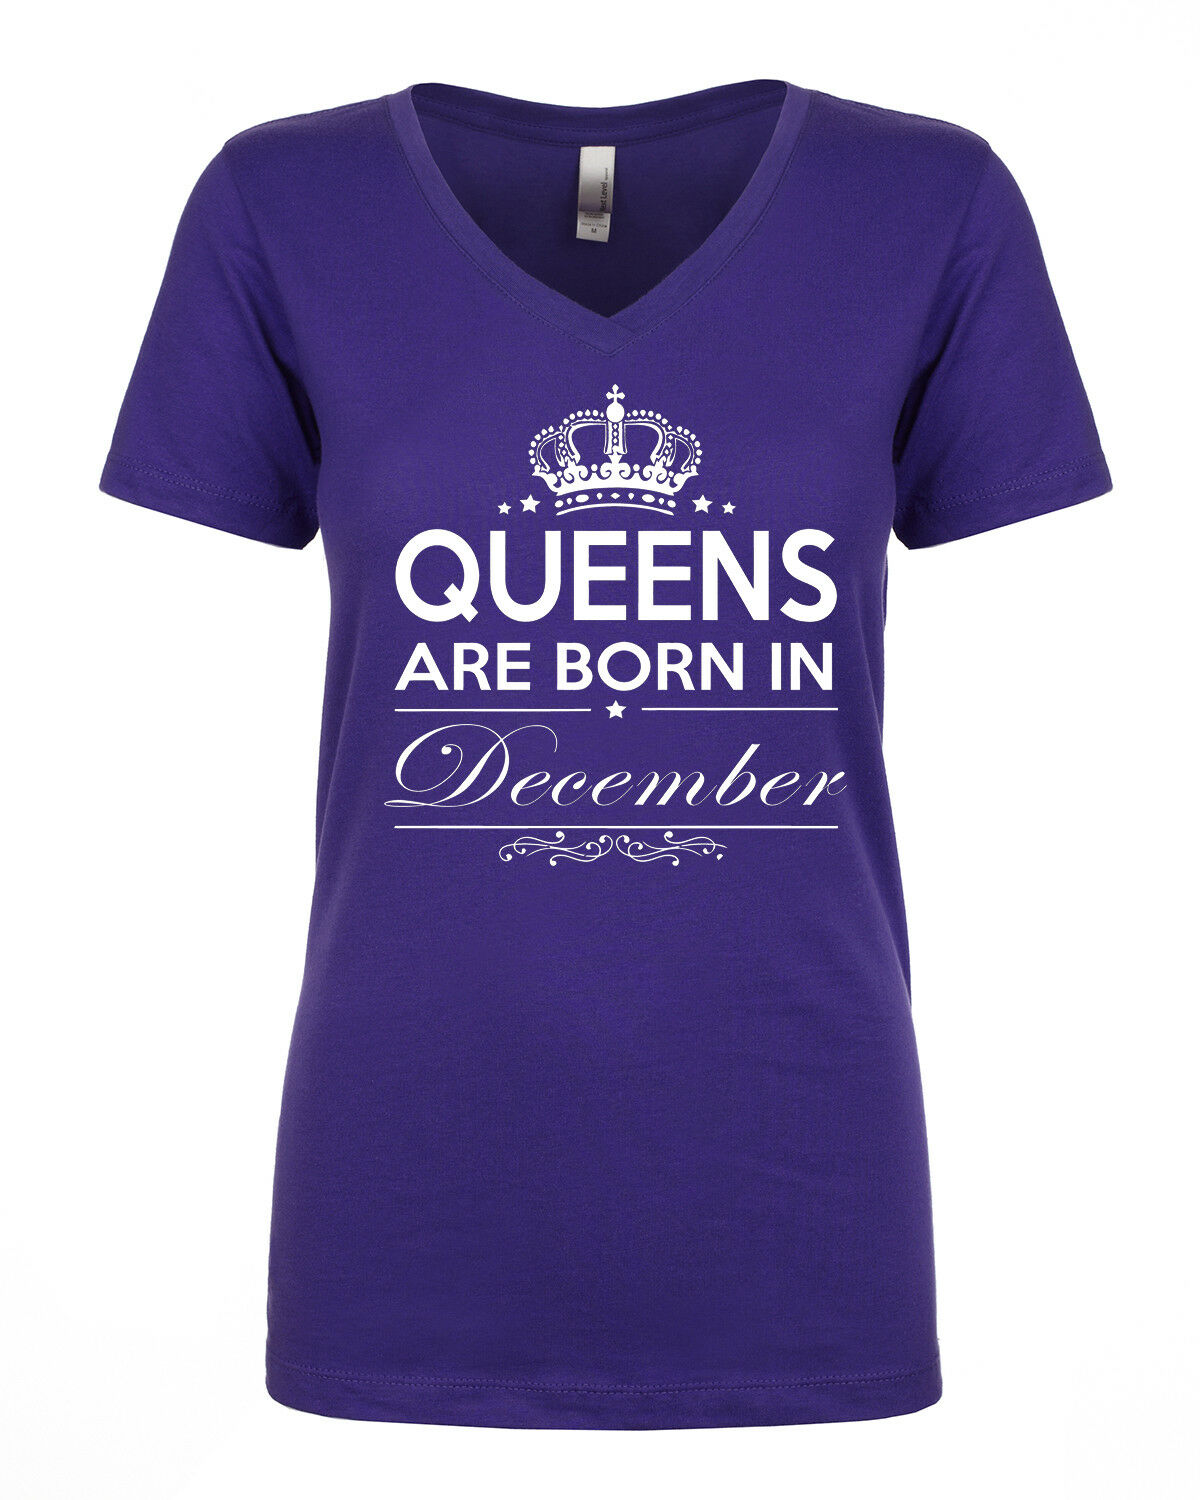 NEW!QUEENS ARE BORN in June ALL MONTHS Birthday T-shirt Women V-neck S-3XL Gray